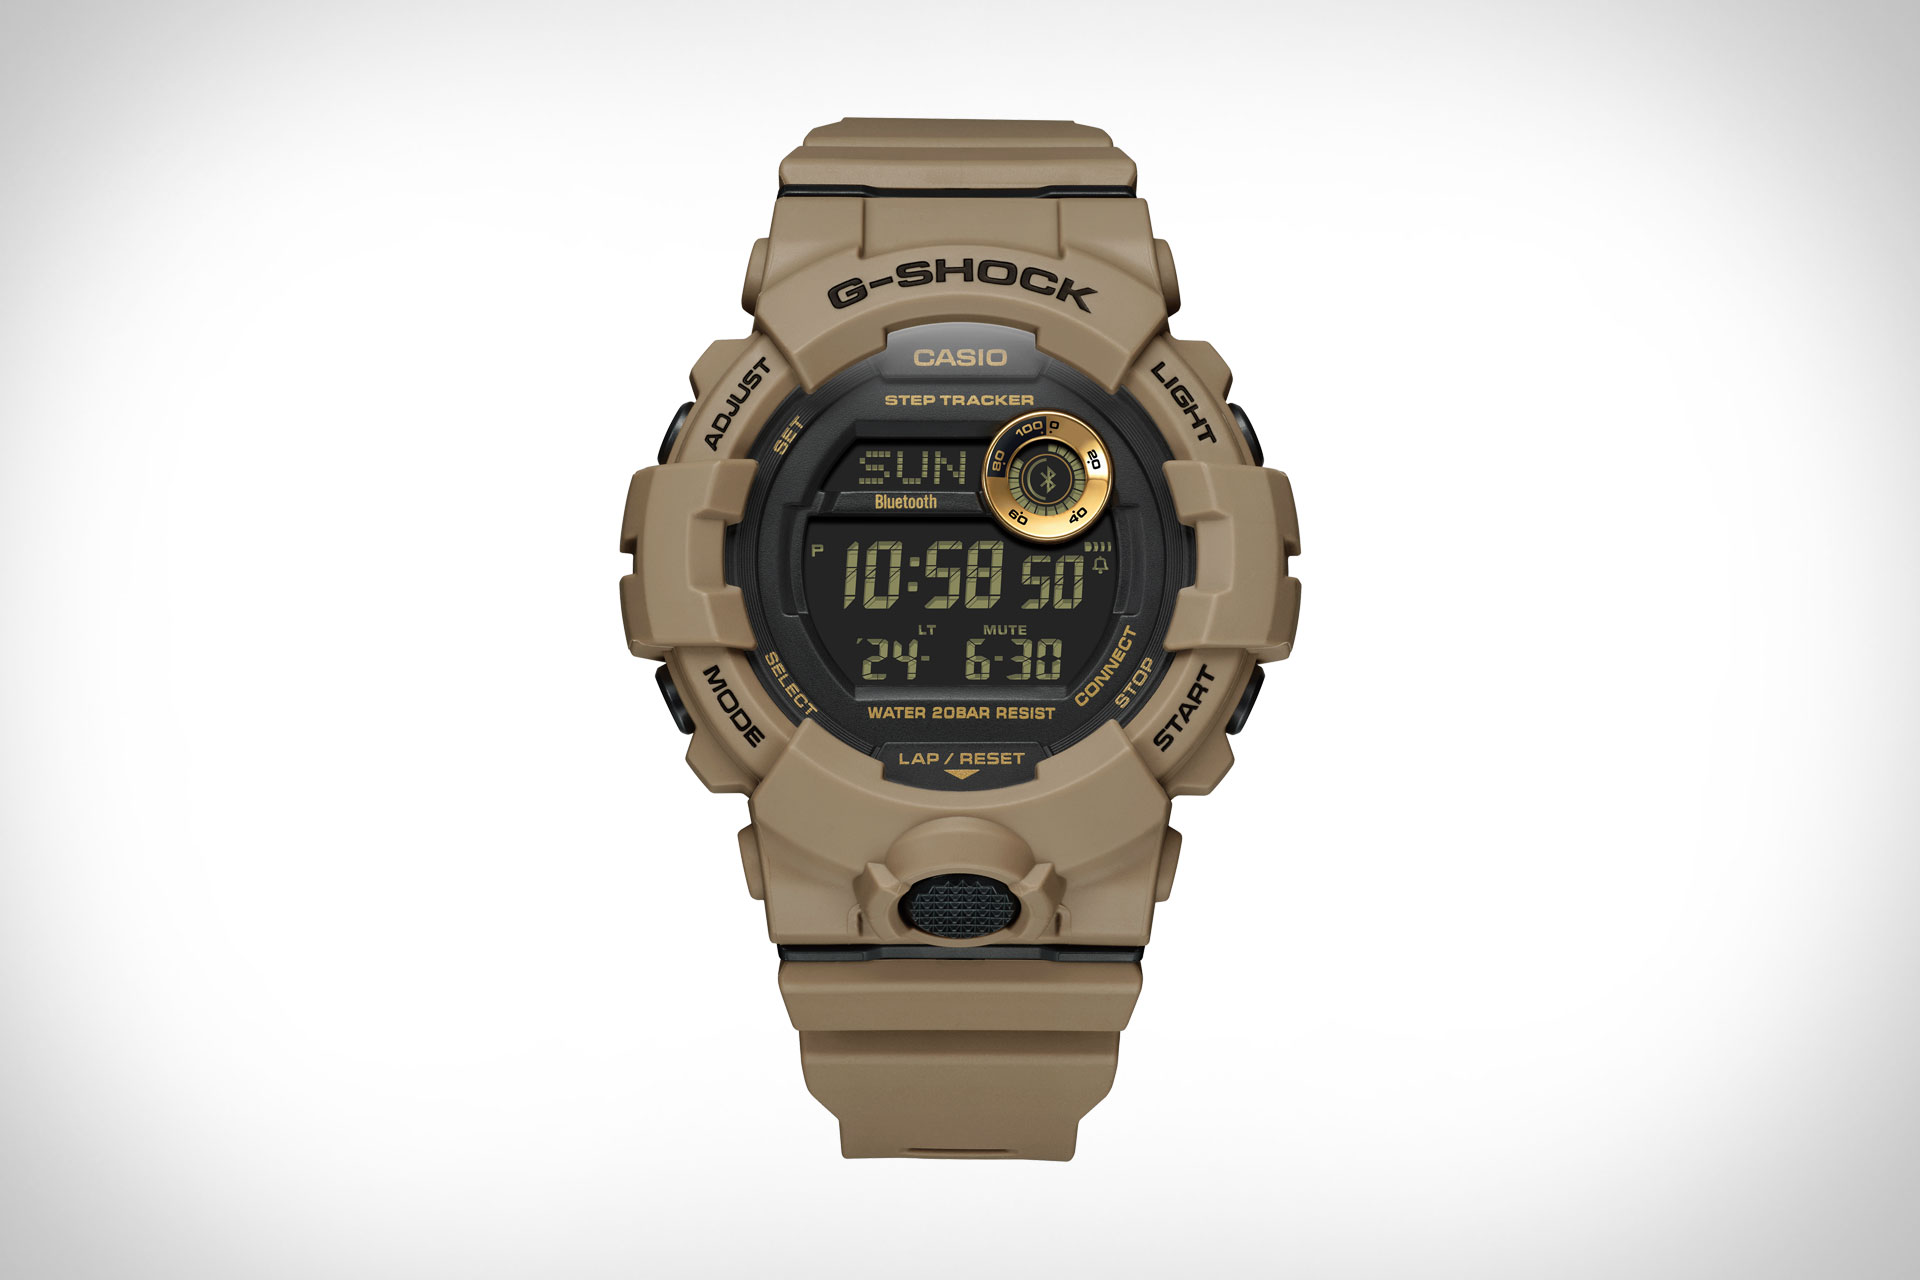 G-Shock Power Trainer Watch | Uncrate